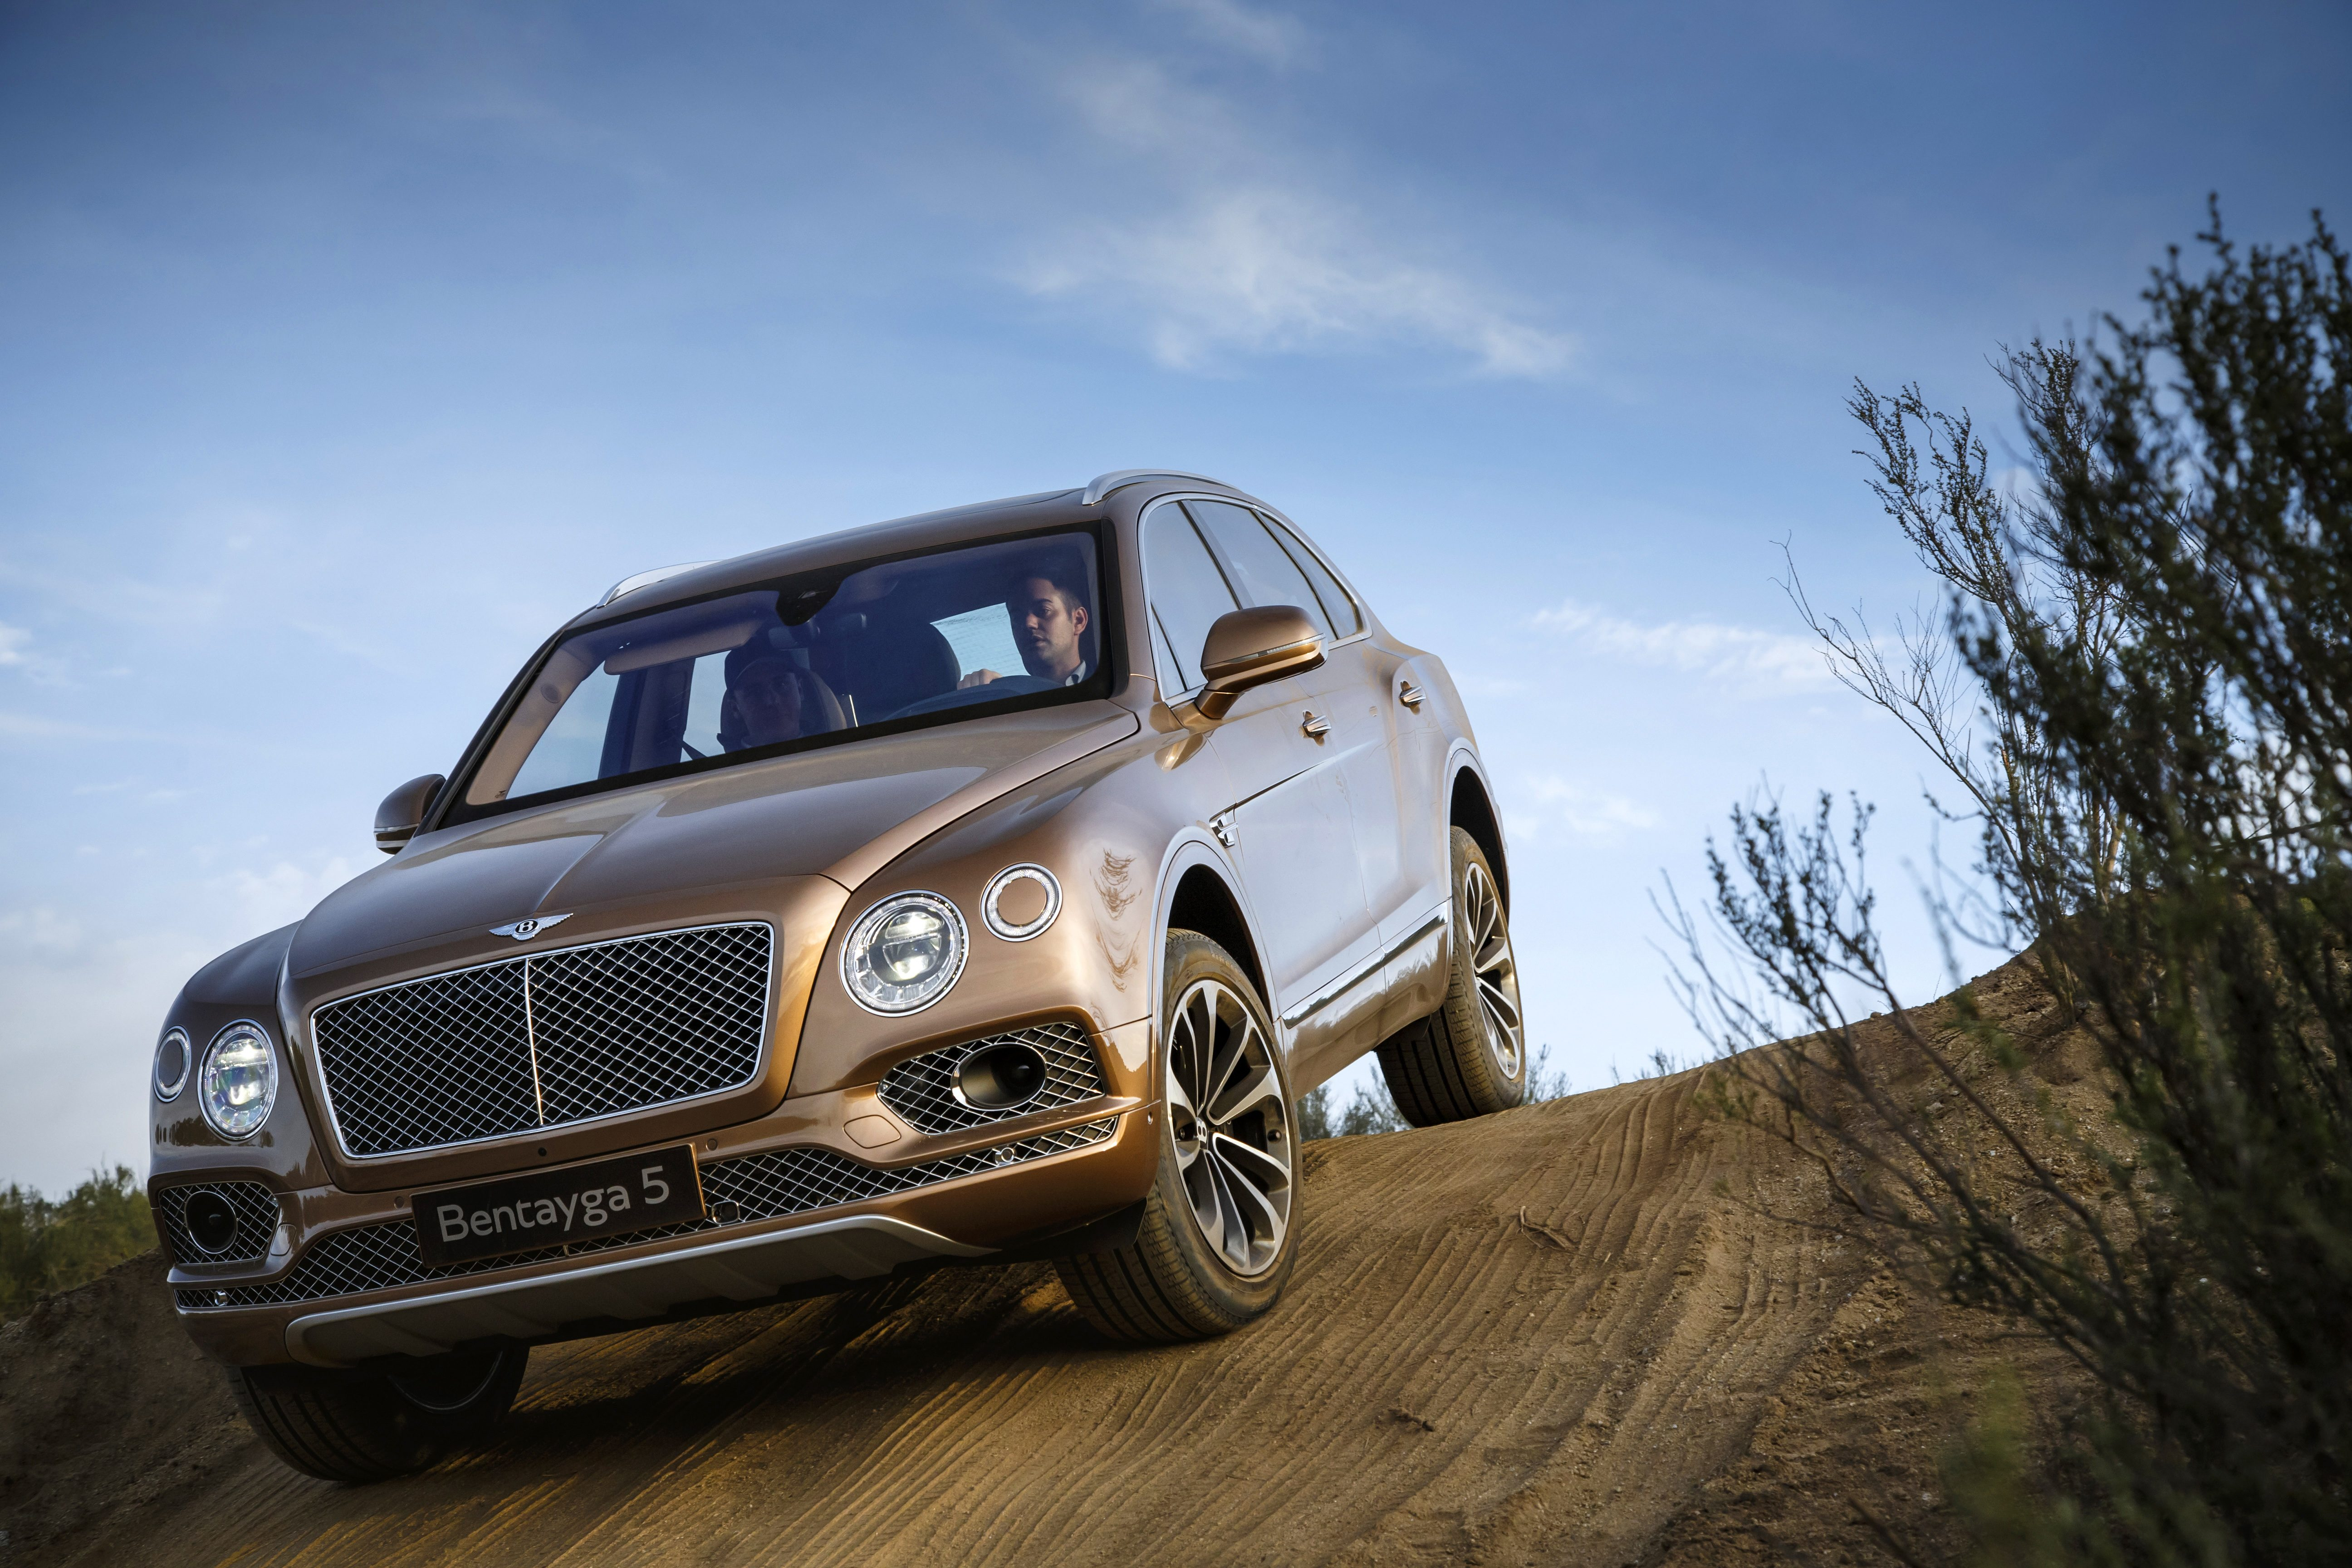 silver news extreme car extended swap mulsanne bentley wheelbase autocar new cars power for electric luxury its to